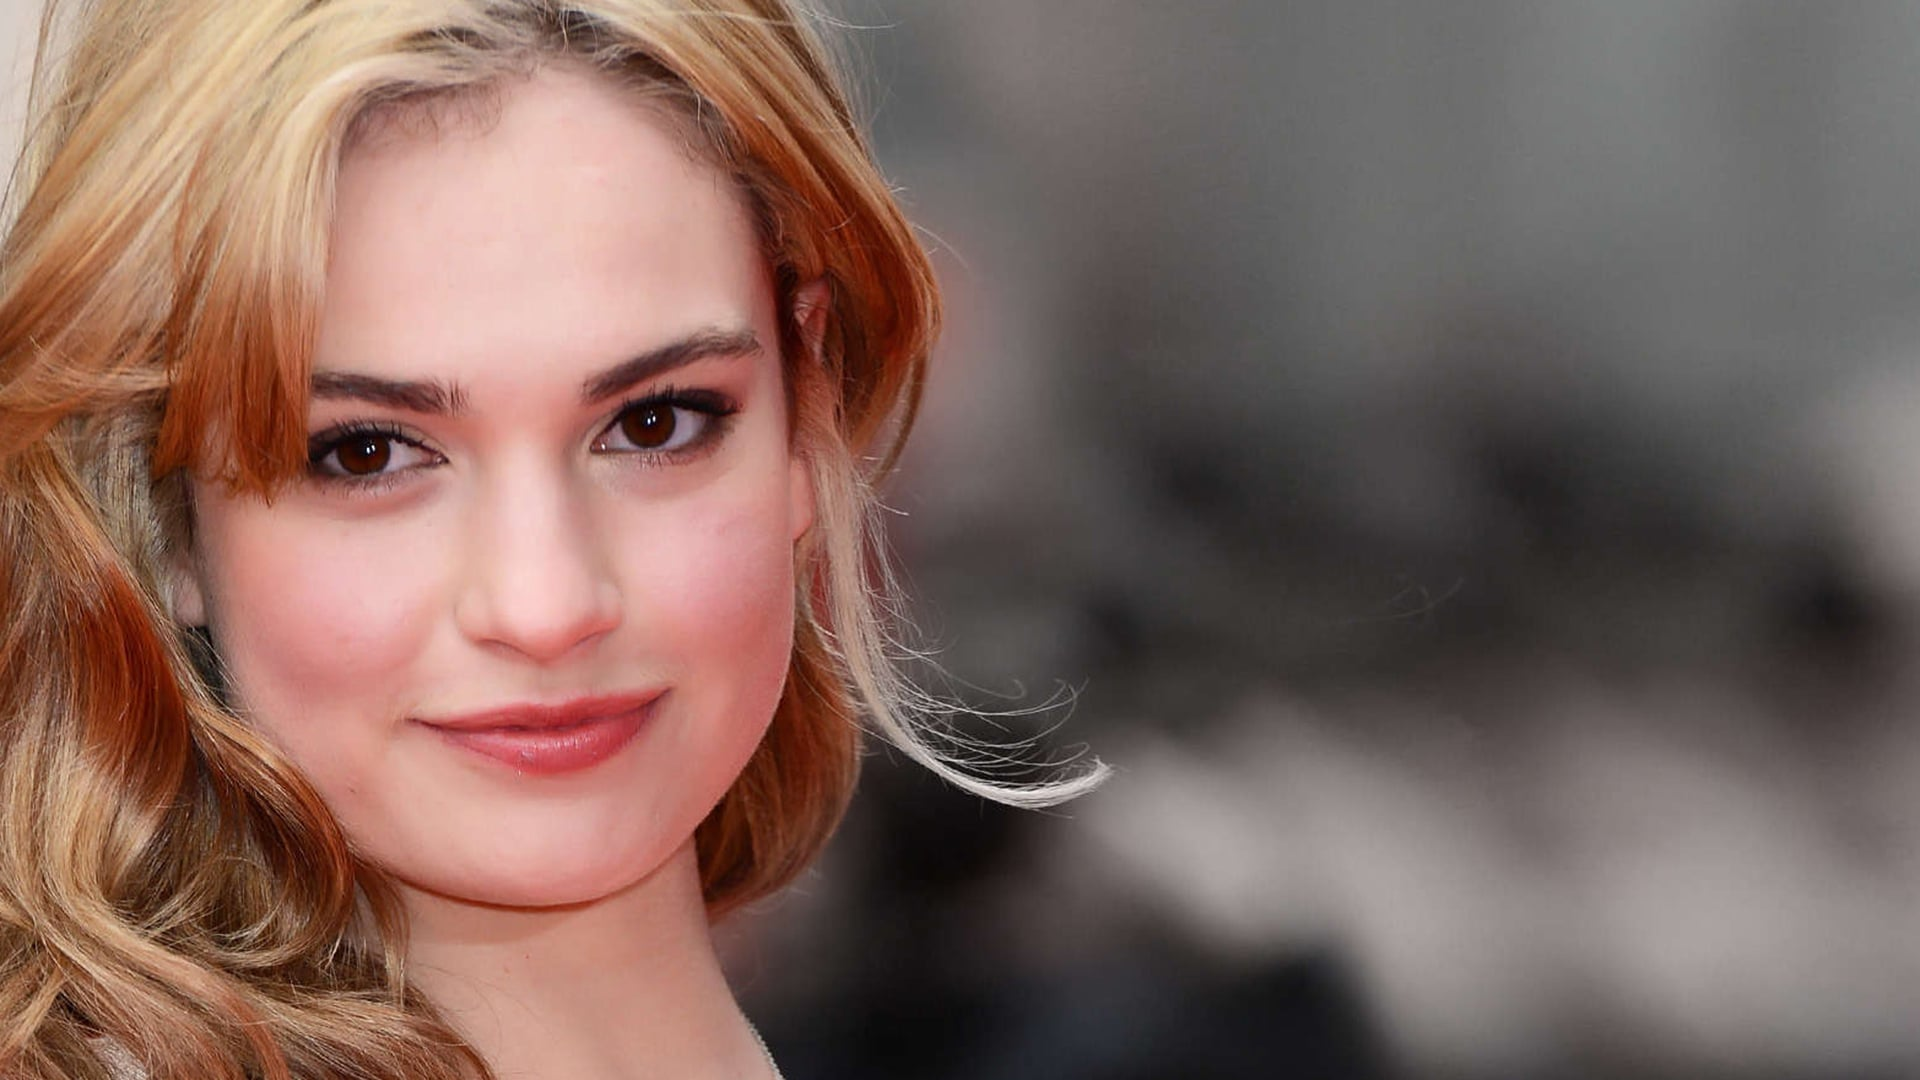 Iphone 6 Hd Car Wallpaper 1080p Lily James Wallpapers Hd Free Download